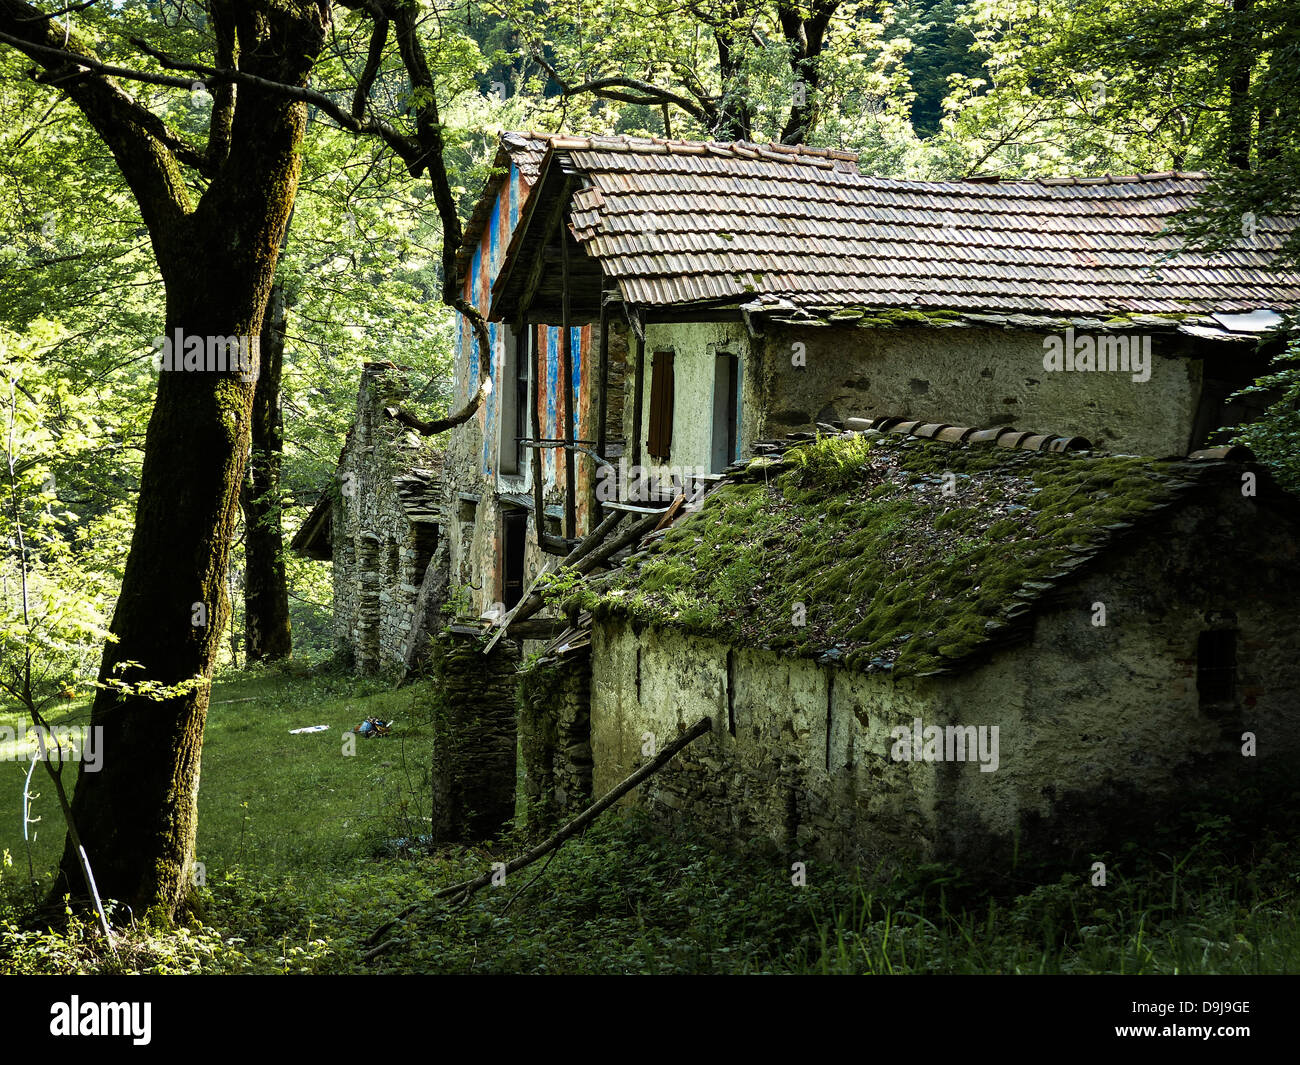 A forest in Terentino, Northern Italy fairytale house - Stock Image